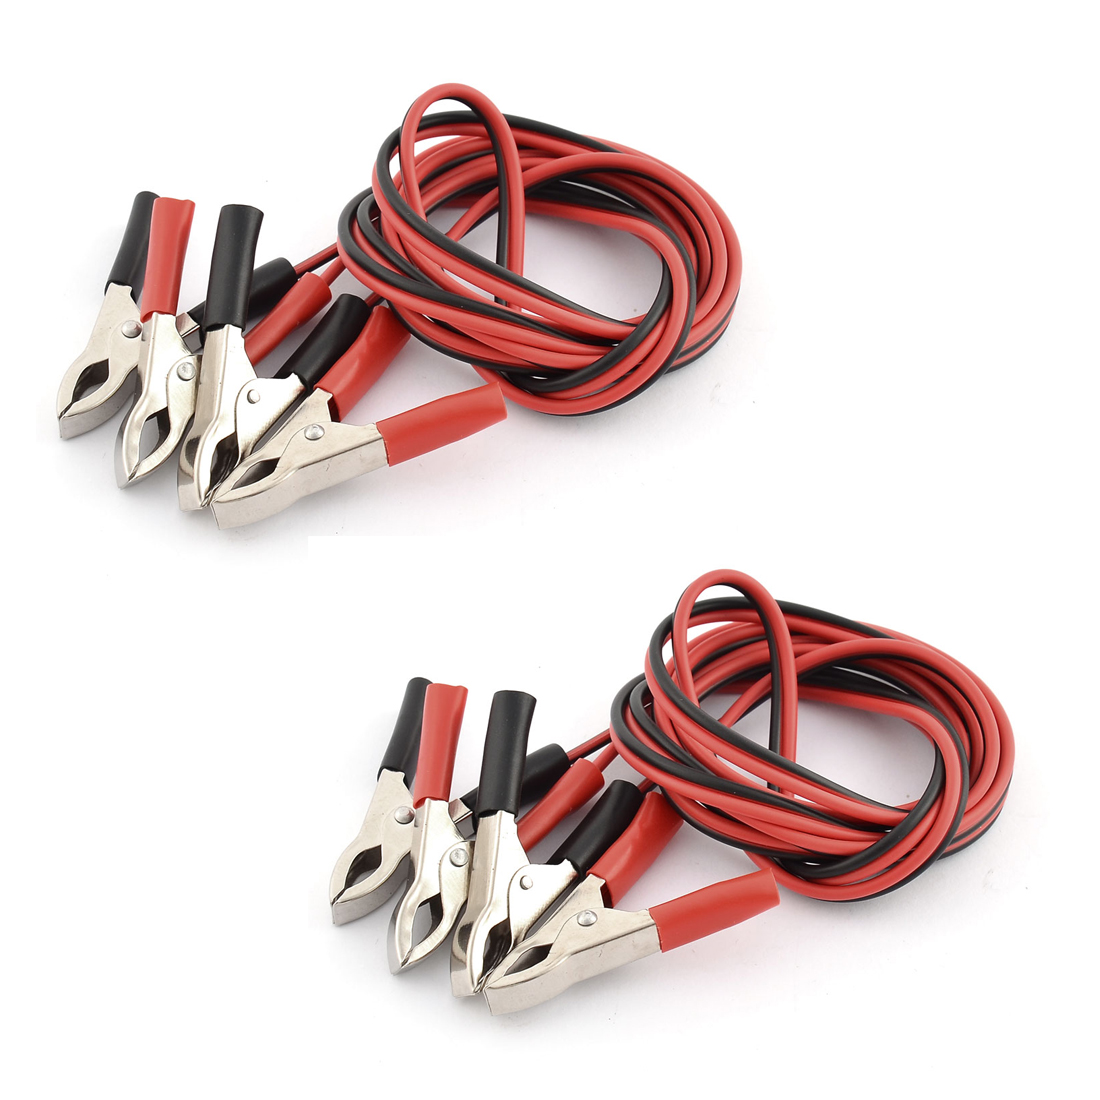 5A Alligator Clip Double Wire Battery Test Booster Jumper Cable 1.5M Long 2pcs